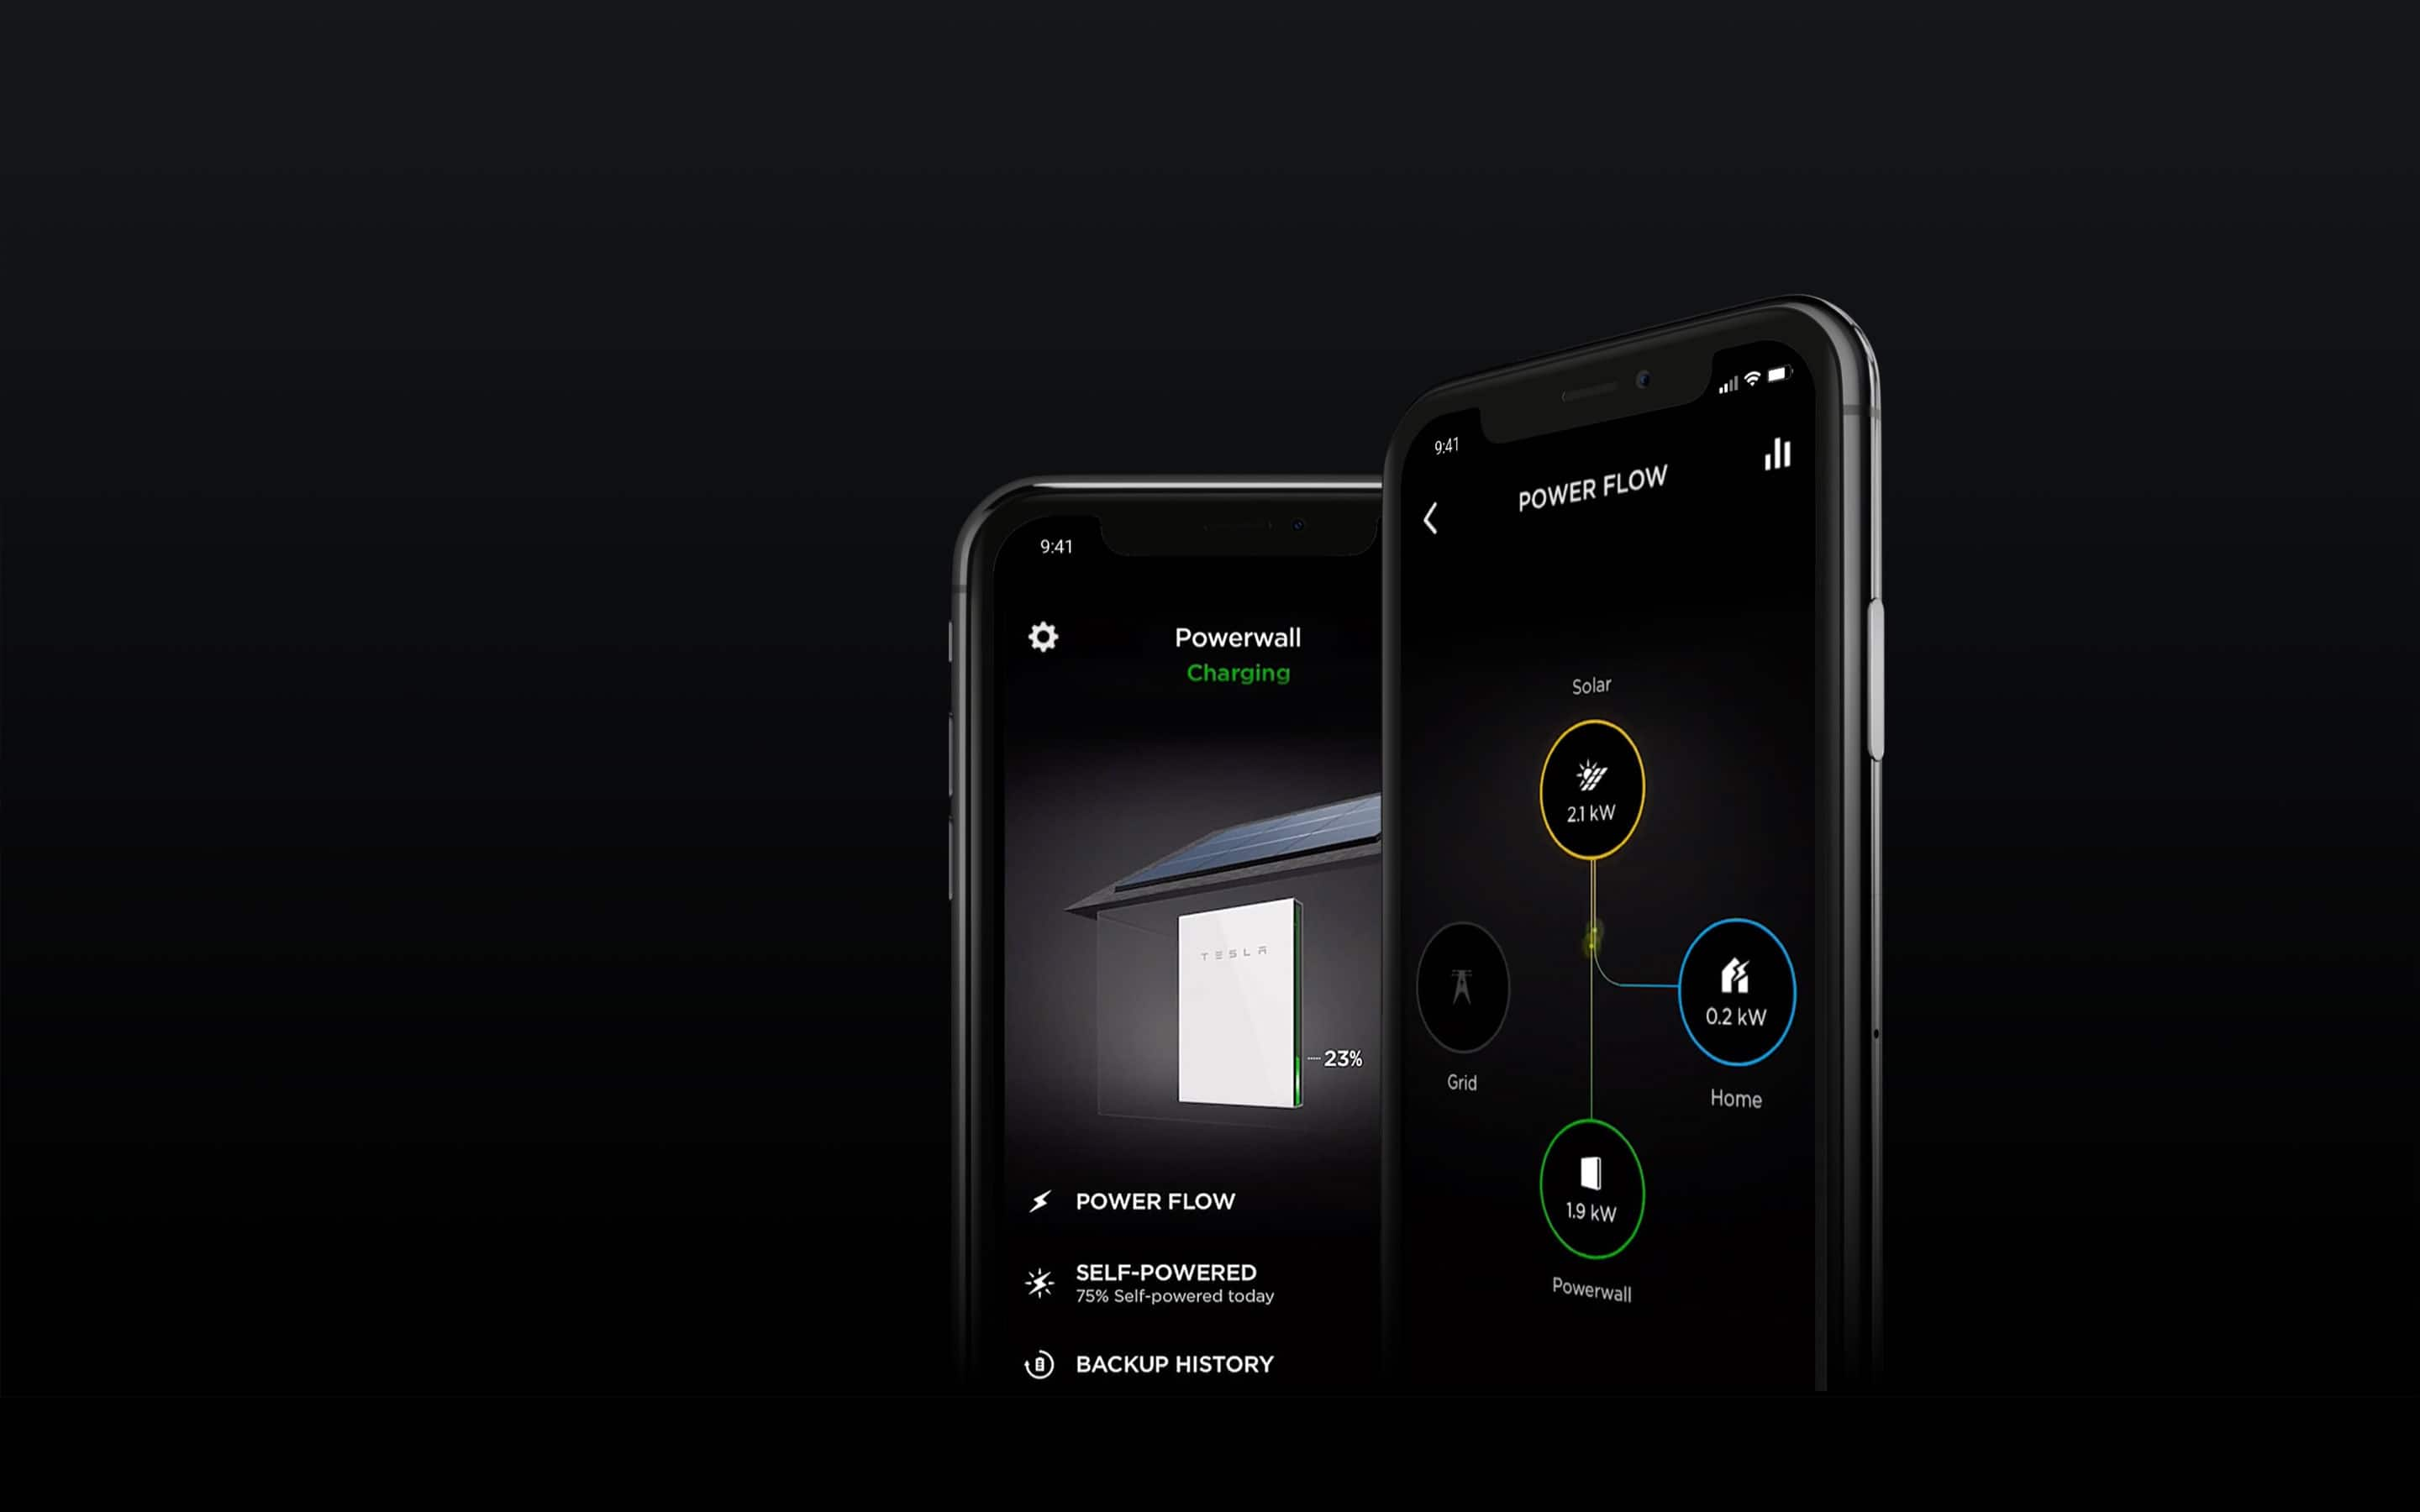 Powerwall mobile app images